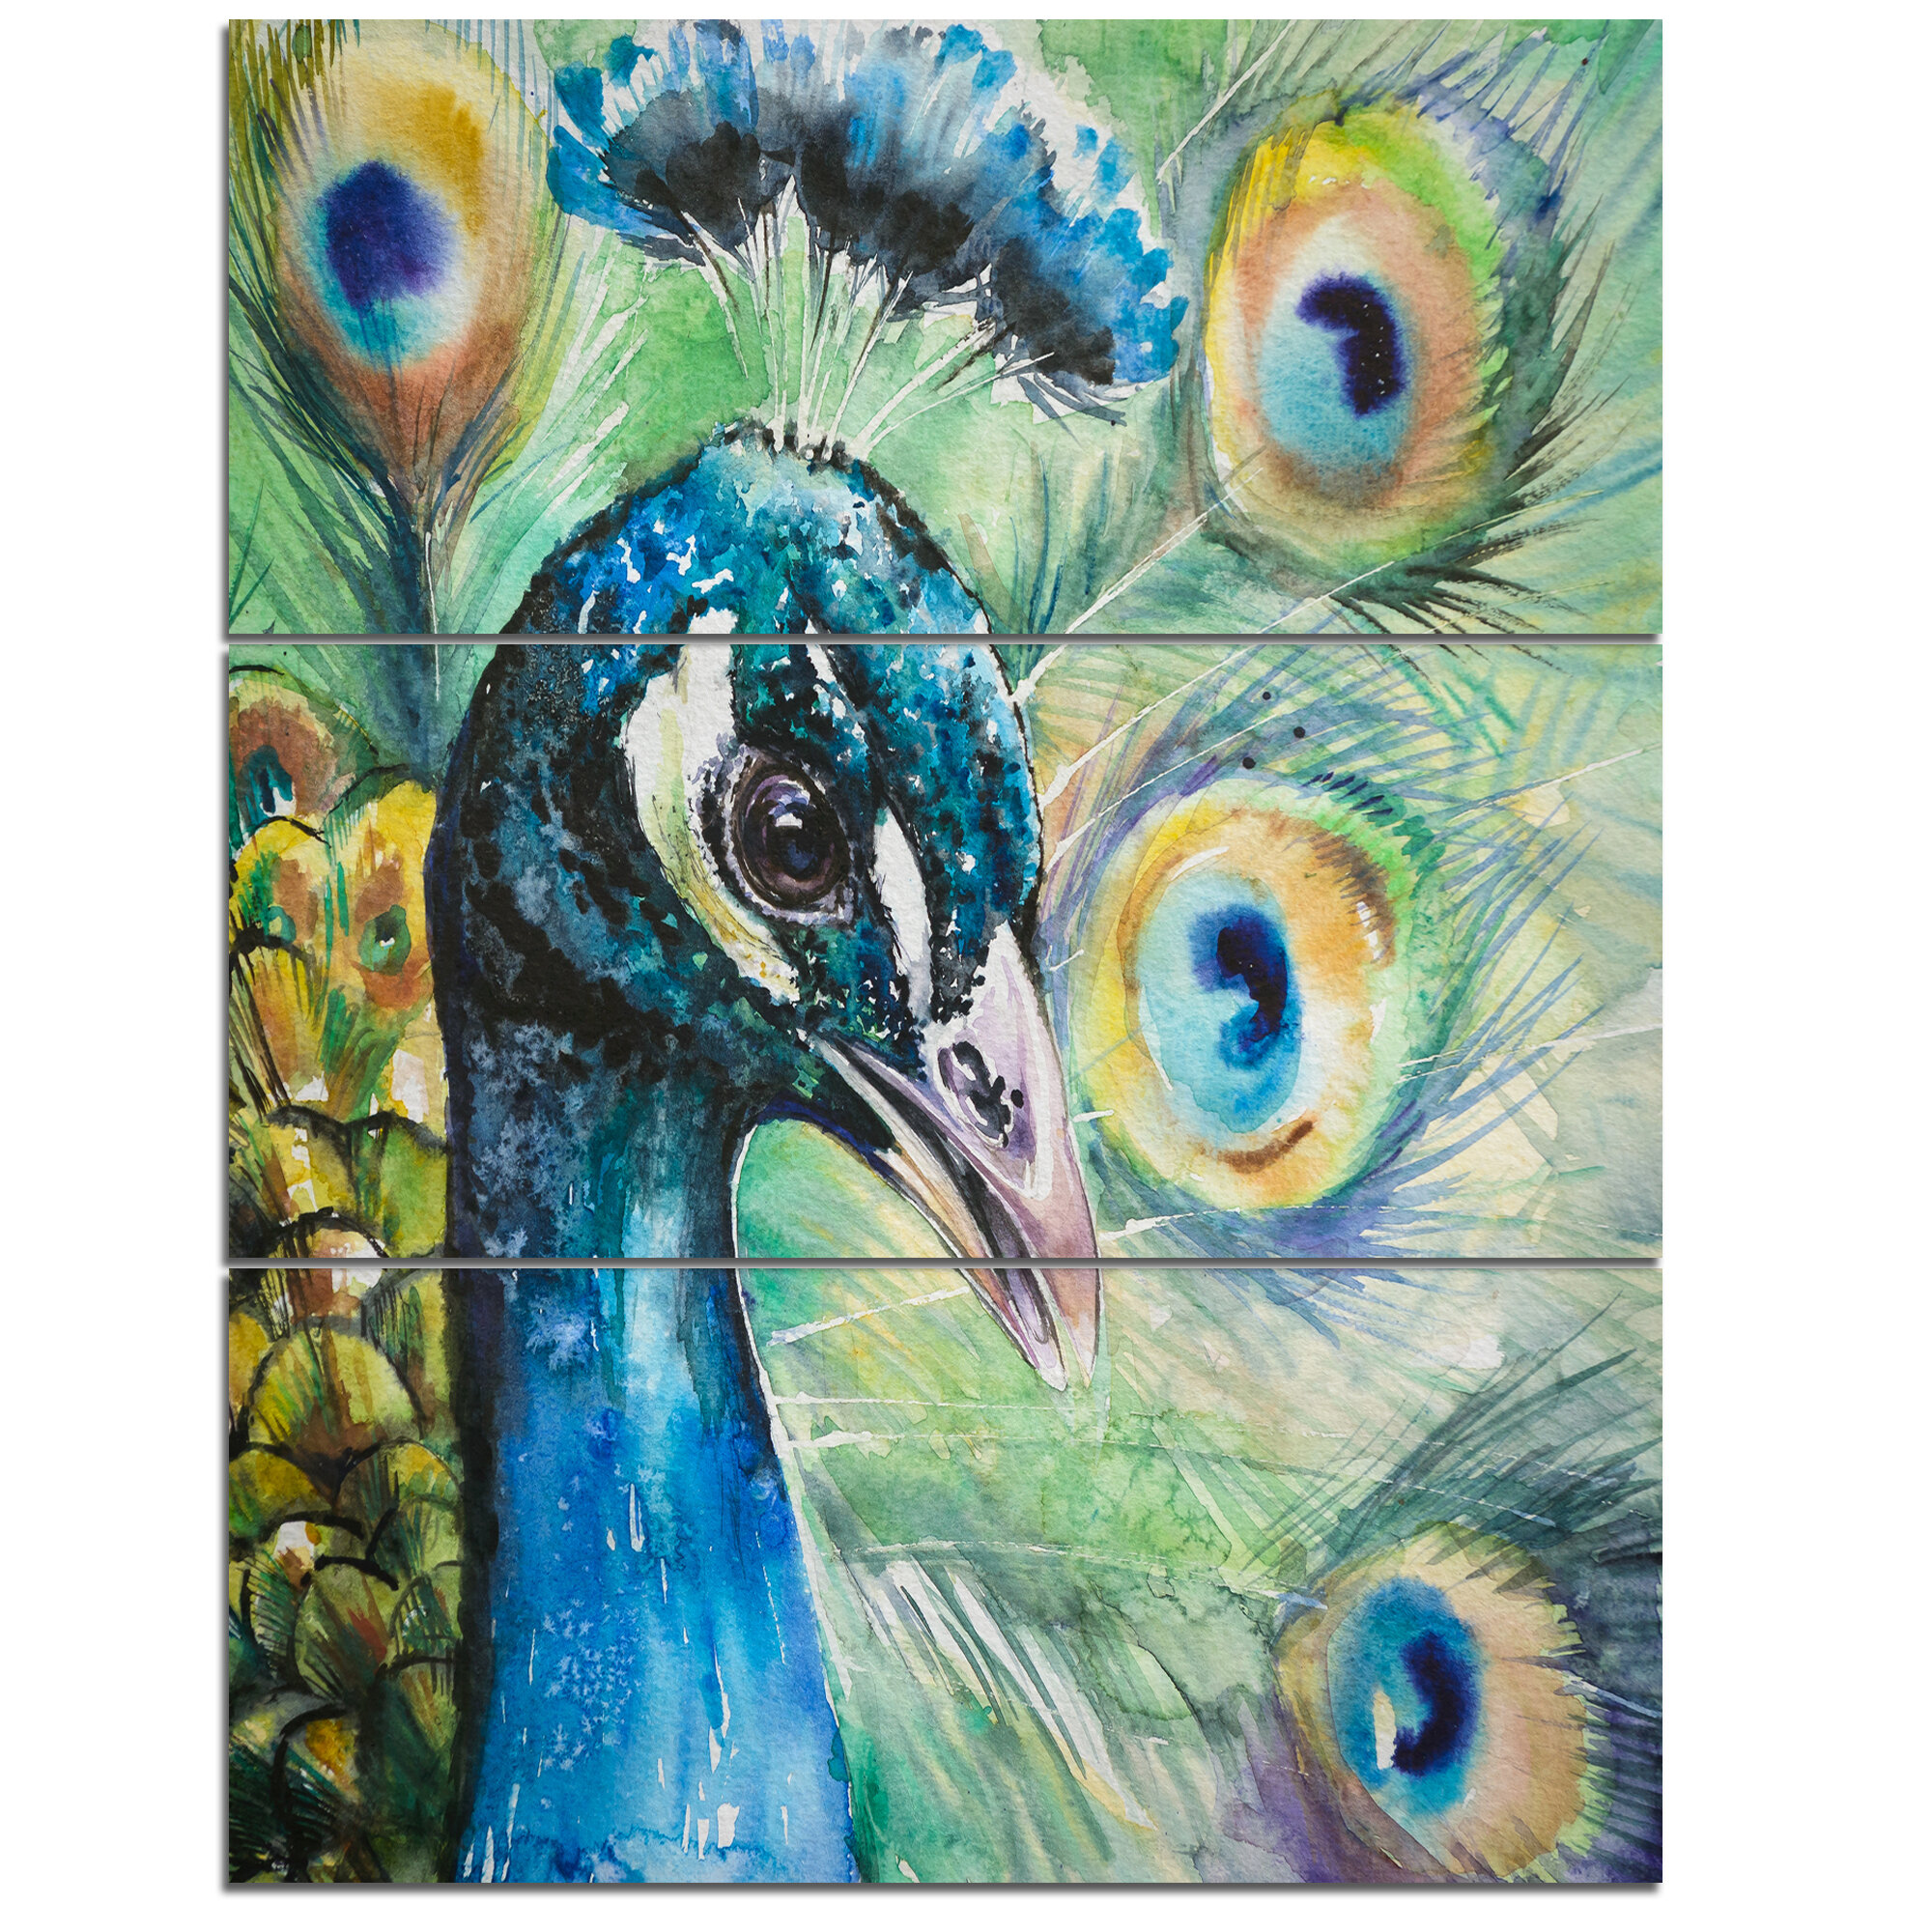 Designart Larger Peacock Watercolor 3 Piece Wall Art On Wrapped Canvas Set Wayfair